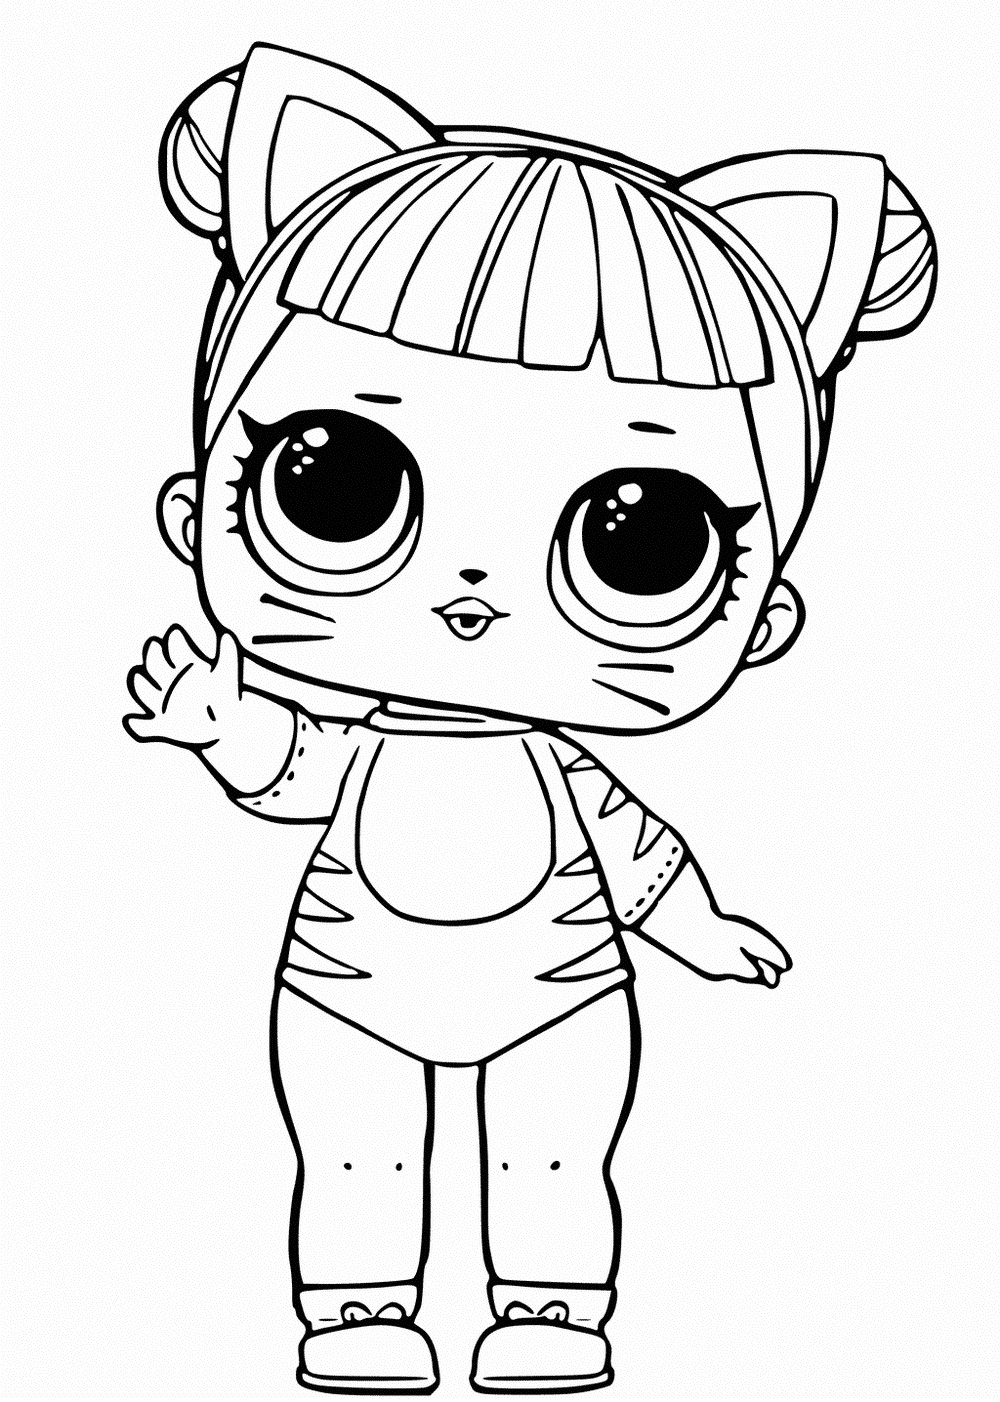 coloring images lol lol surprise dolls coloring pages print them for free lol coloring images